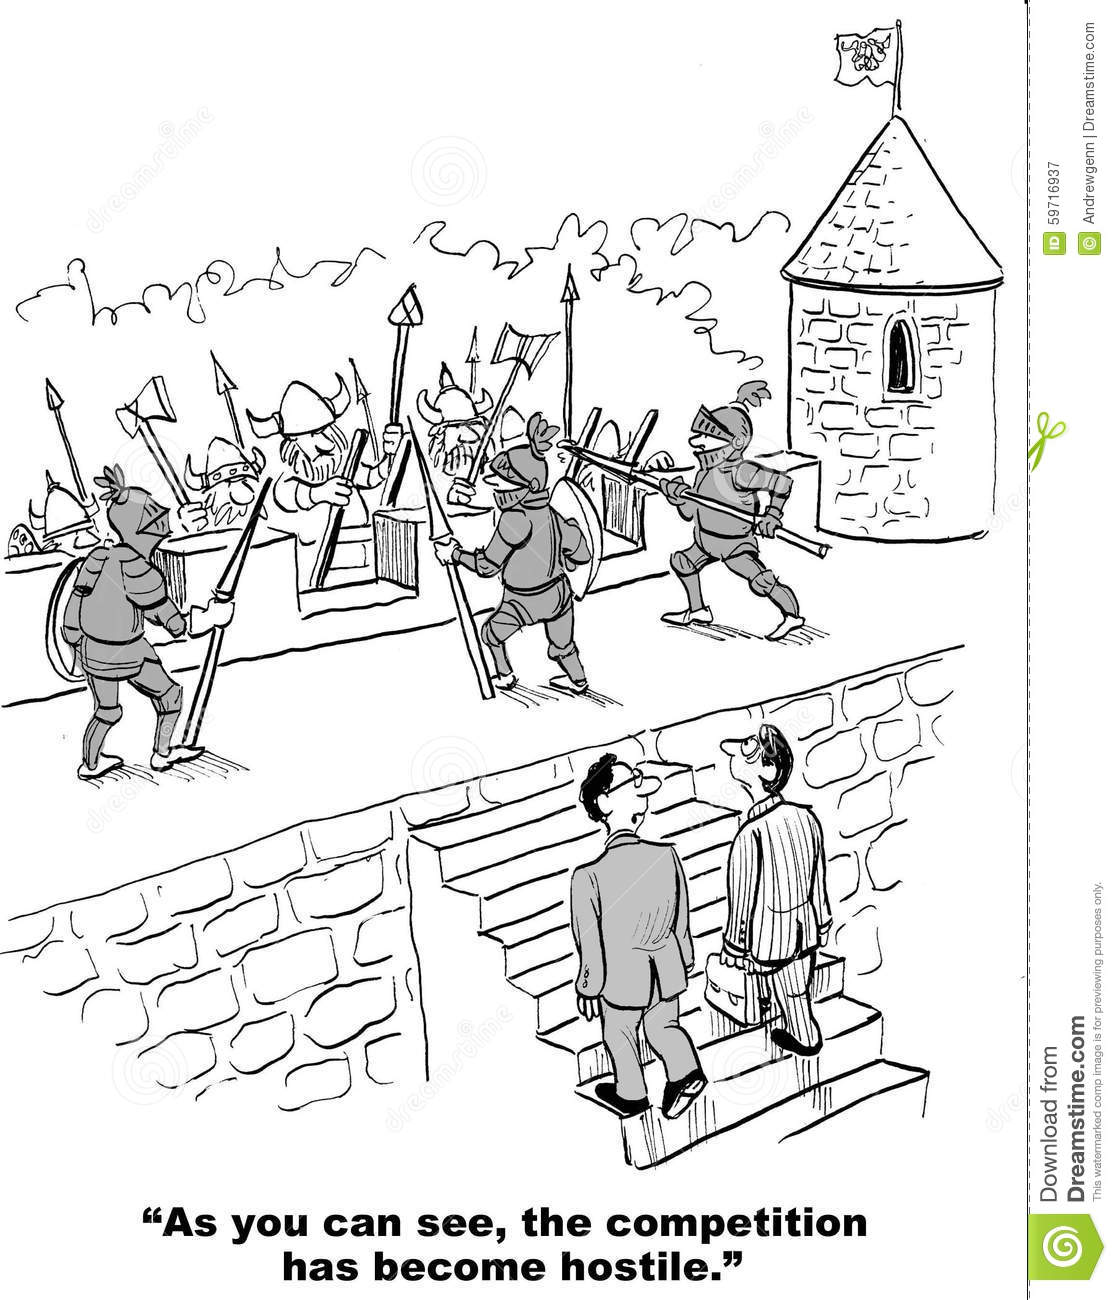 Stock Illustration  petition Has Be e Hostile Business Cartoon Showing Ancient Warriors Battle Businessmen Say As You Can See Image59716937 as well Cartoonstock   newscartoons cartoonists rro lowres miscellaneous Property House Estate agent Real estate House prices Rron290l additionally Single Panel Cartoons further 63 Free Retro Clipart Illustration Of Man Carrying Big Bag Of Money With Dollar Sign likewise . on sales referral cartoons